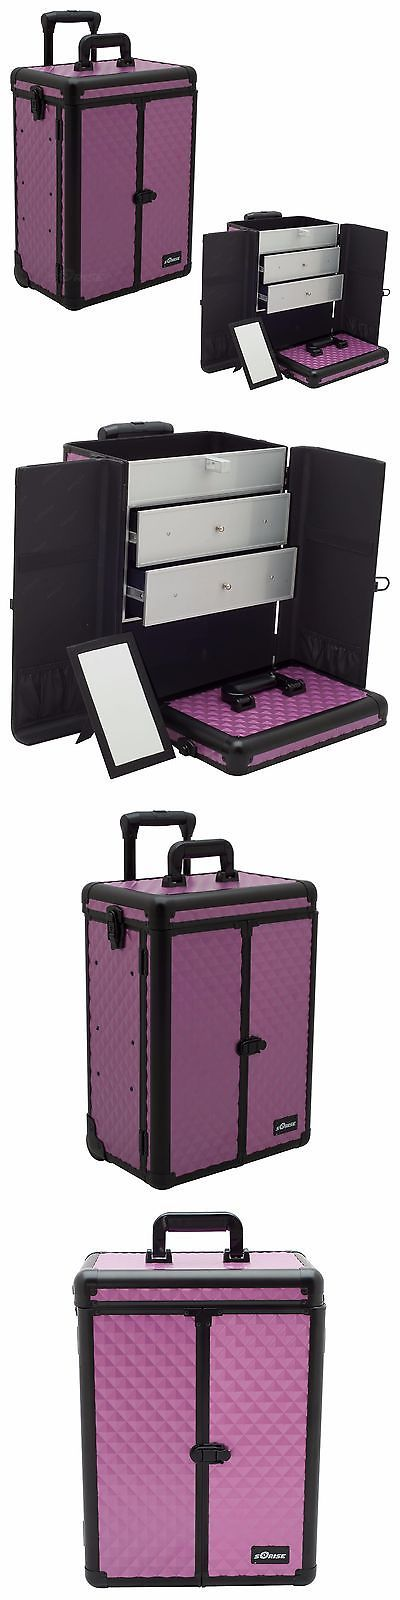 Rolling Makeup Cases: Makeup Storage Box Train Make Up Cosmetic Luggage Organizer Rolling Beauty Case BUY IT NOW ONLY: $149.95